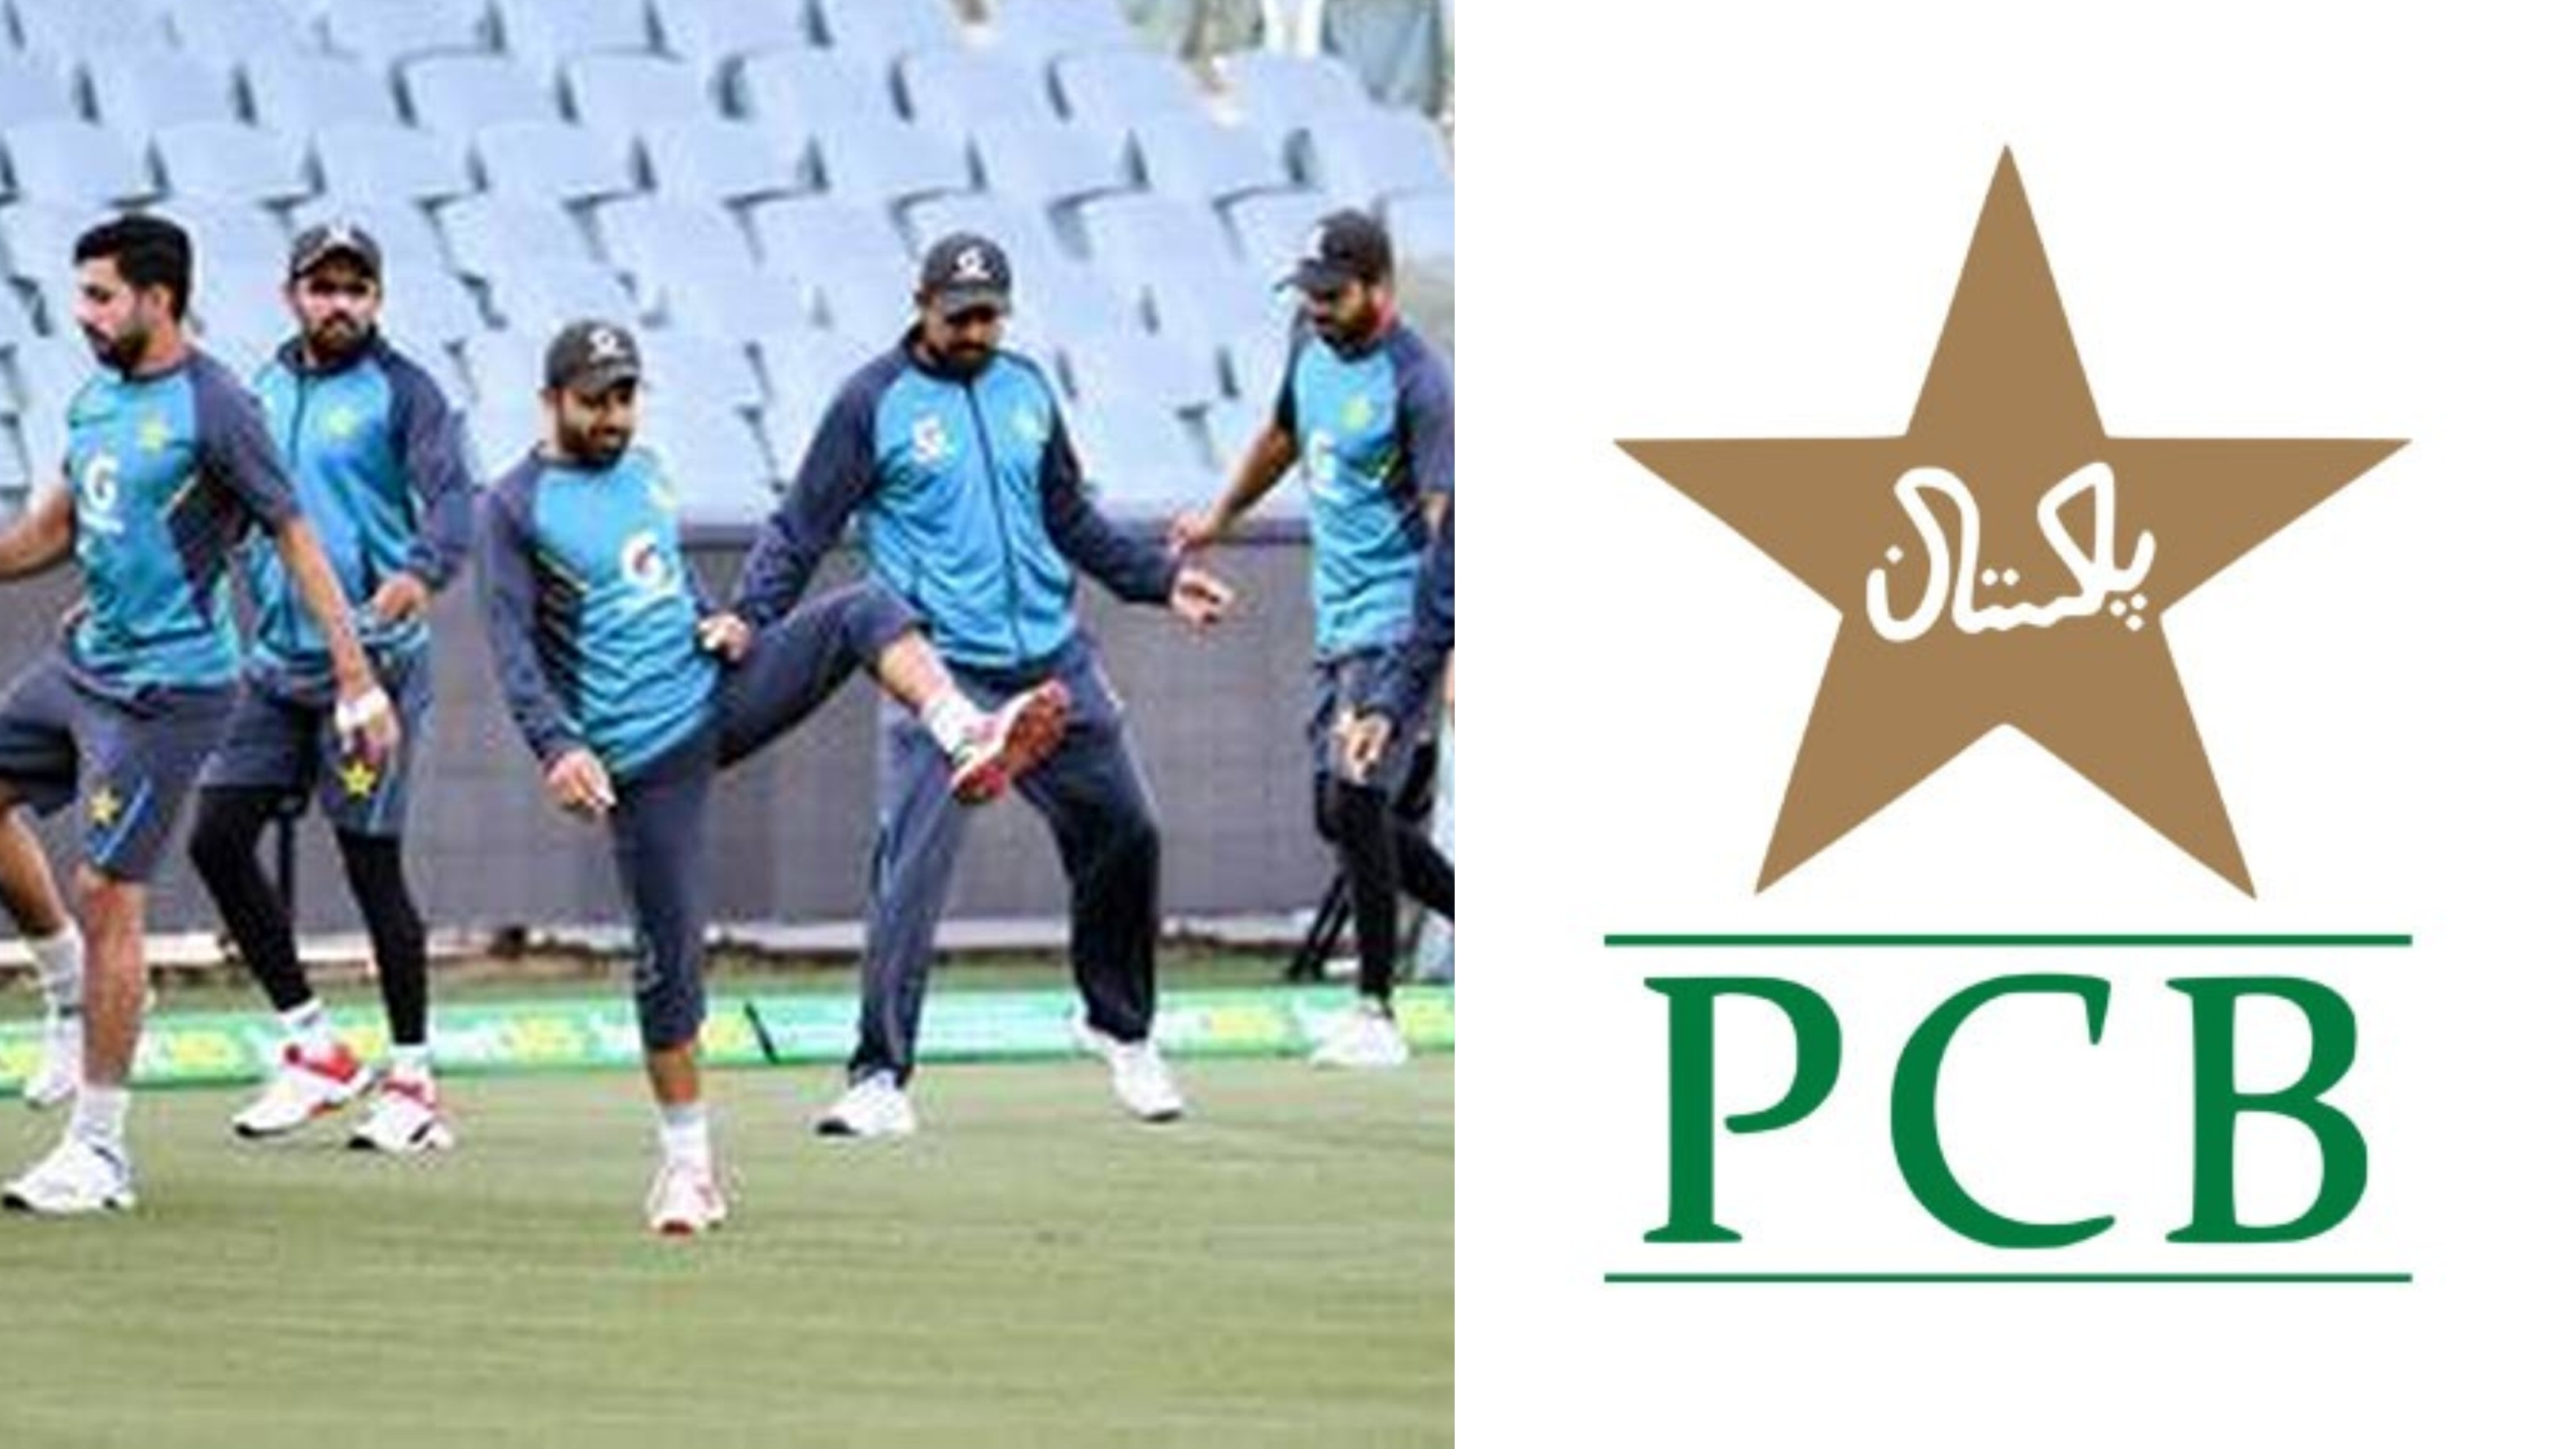 PCB to conduct fitness test via video amid COVID-19 lockdown